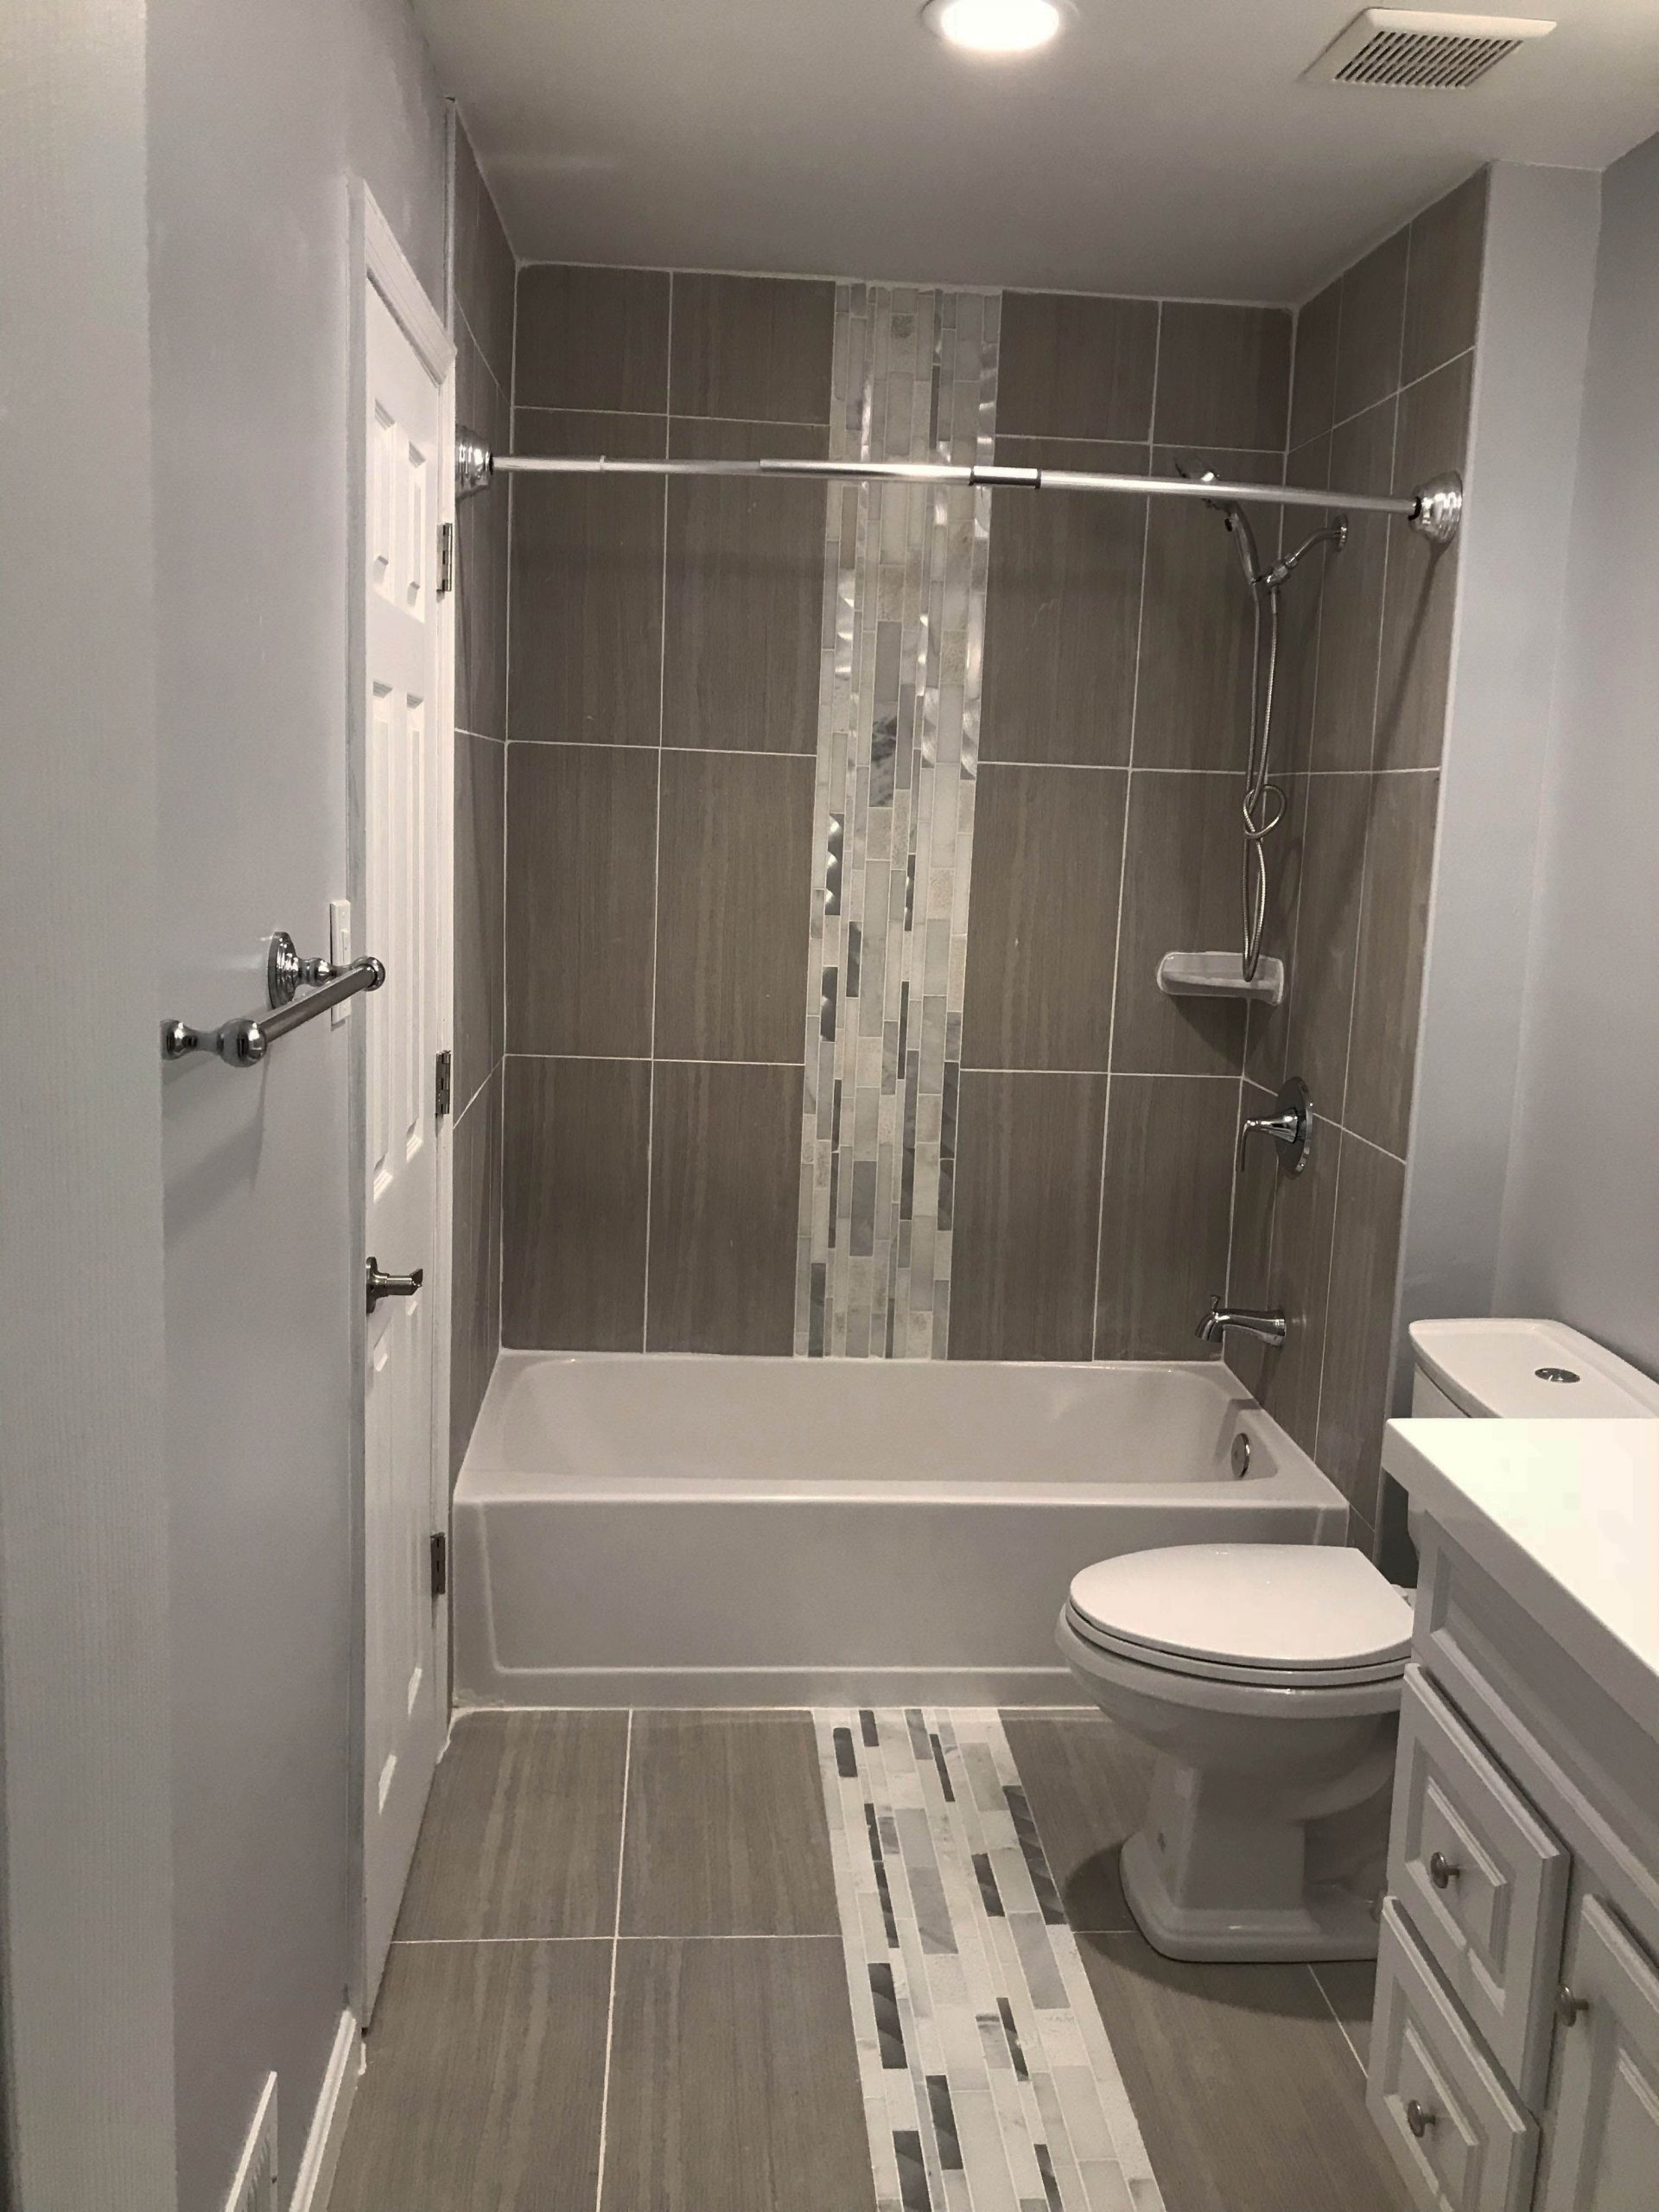 New Lowes Bathroom Shower Ideas Exclusive On Planet Home 20+ Lowe'S Creative Bathroom Inspirations